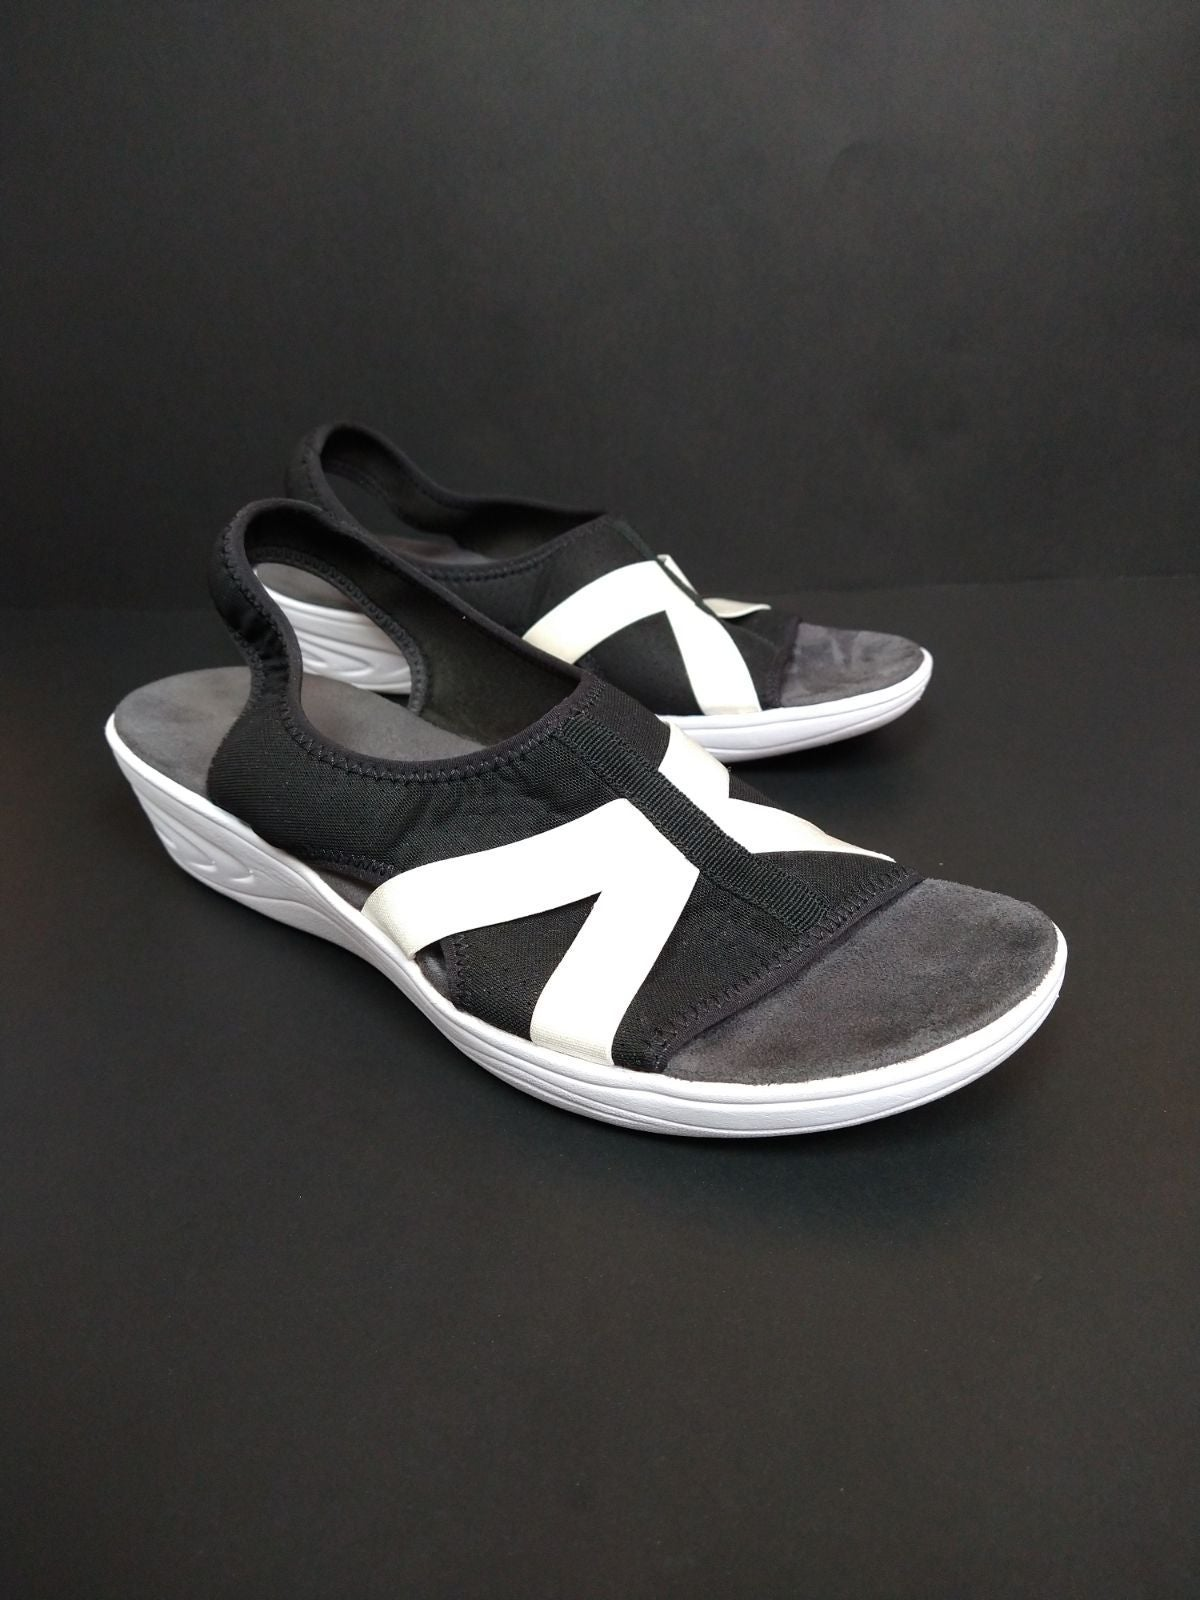 Easy Spirit Black and White Sandals